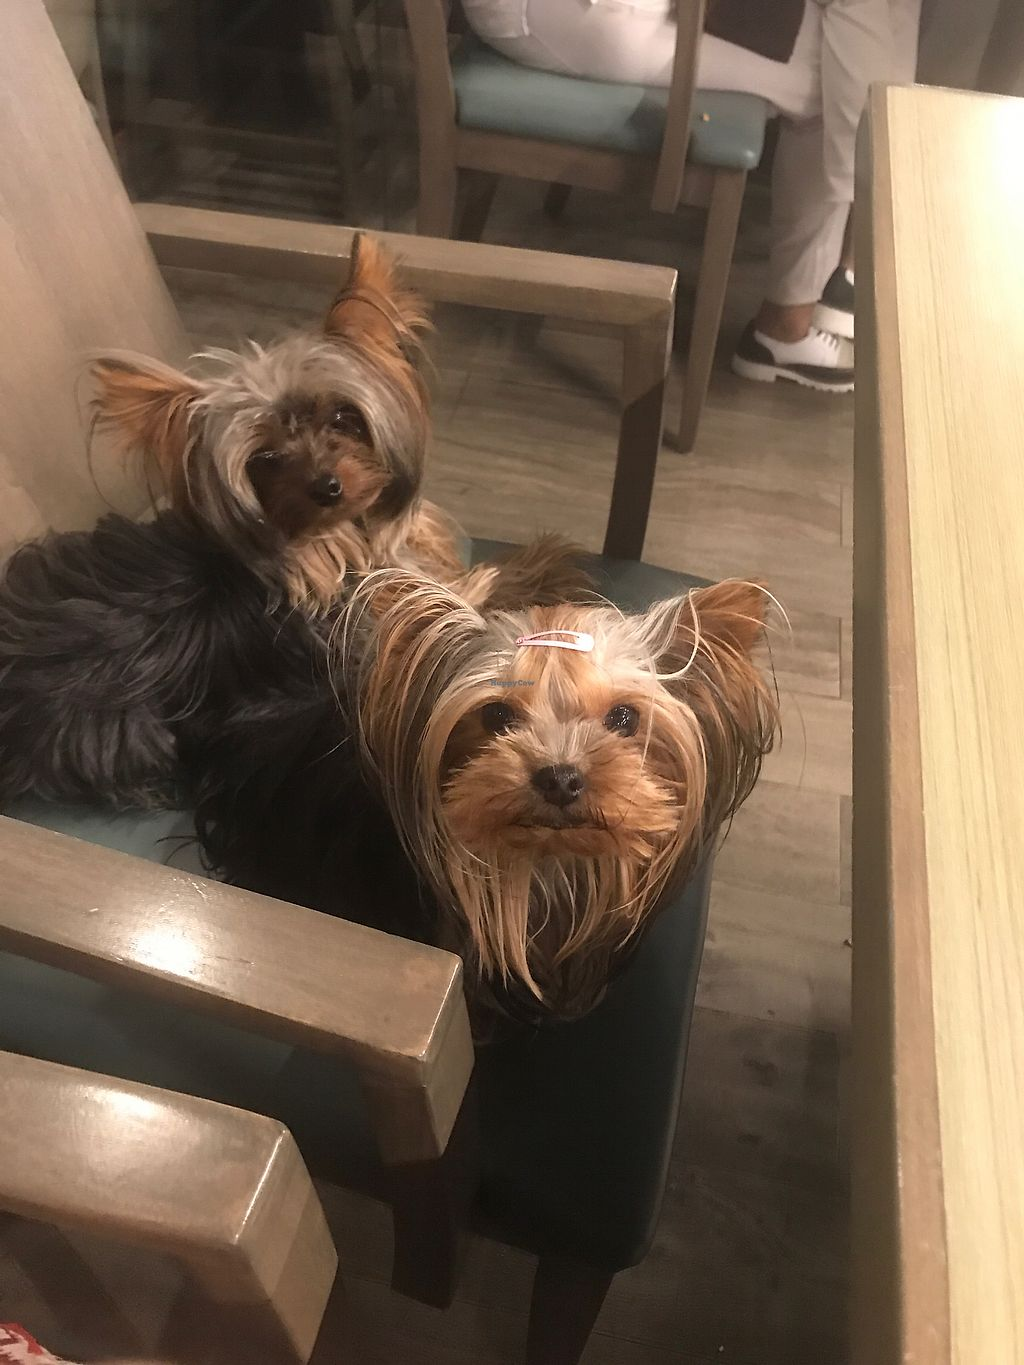 """Photo of Vegan Inc  by <a href=""""/members/profile/AlejandraRangel"""">AlejandraRangel</a> <br/>pet friendly too in a pet friendly mall  <br/> August 13, 2017  - <a href='/contact/abuse/image/75864/292436'>Report</a>"""